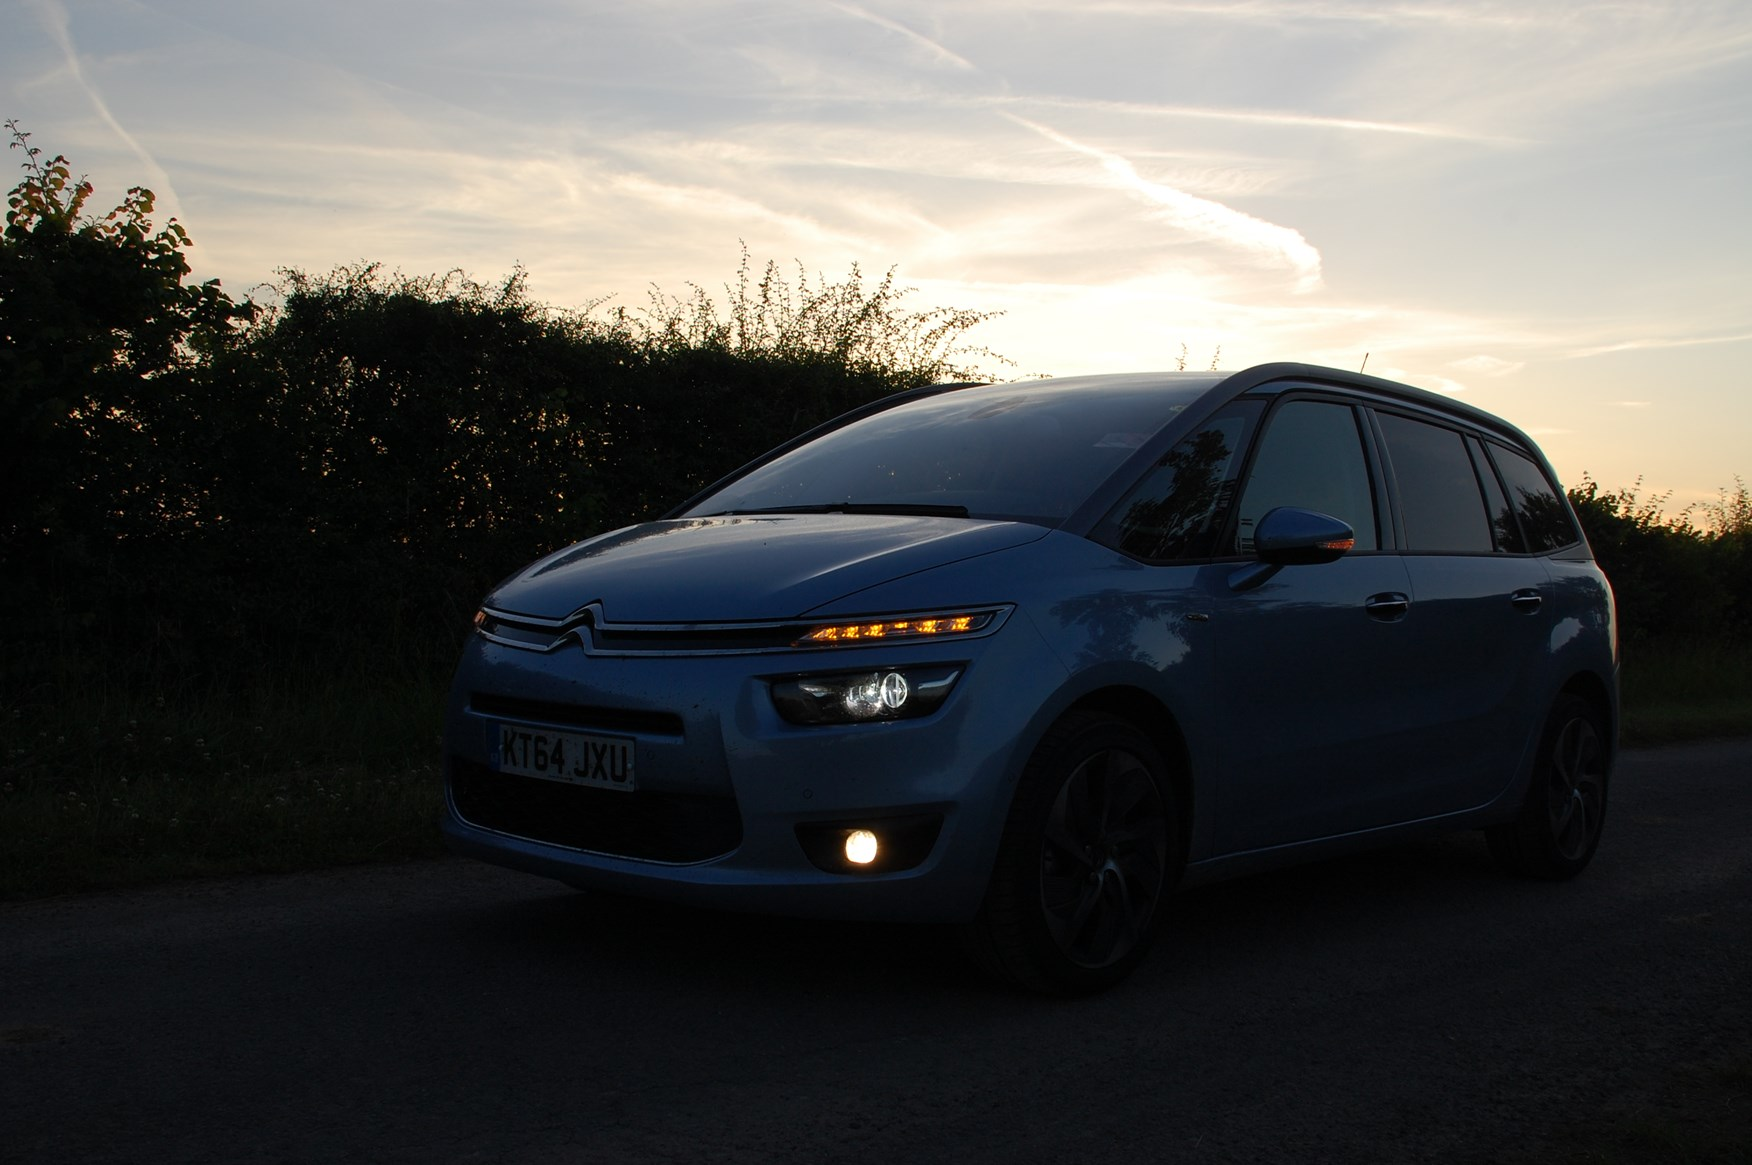 citroen grand c4 picasso let there be lights parkers. Black Bedroom Furniture Sets. Home Design Ideas